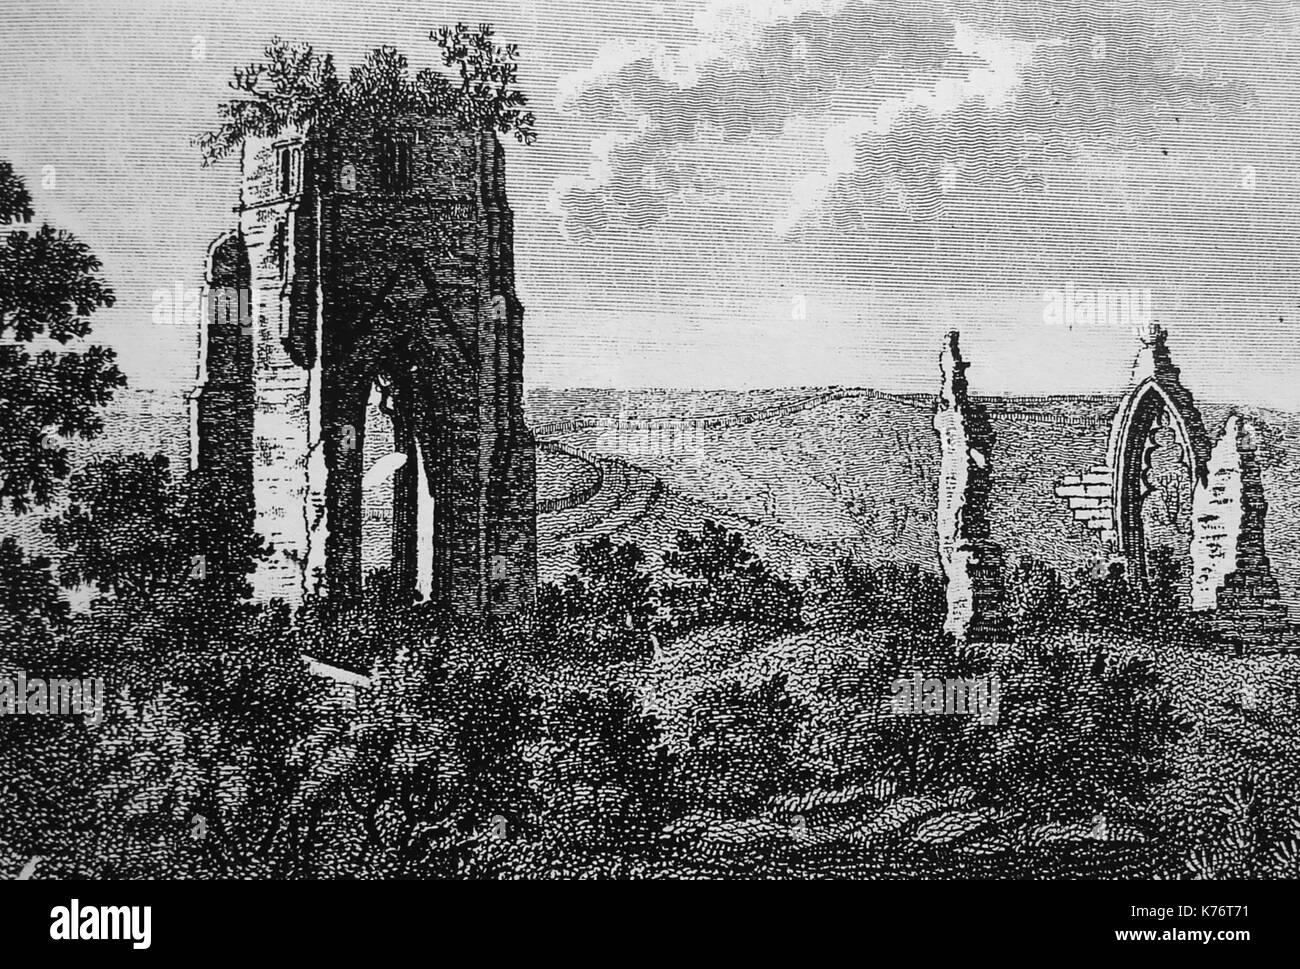 A 1774 engraving of Shap Premonstratensian Abbey(monastery), Westmoreland, UK - Stock Image